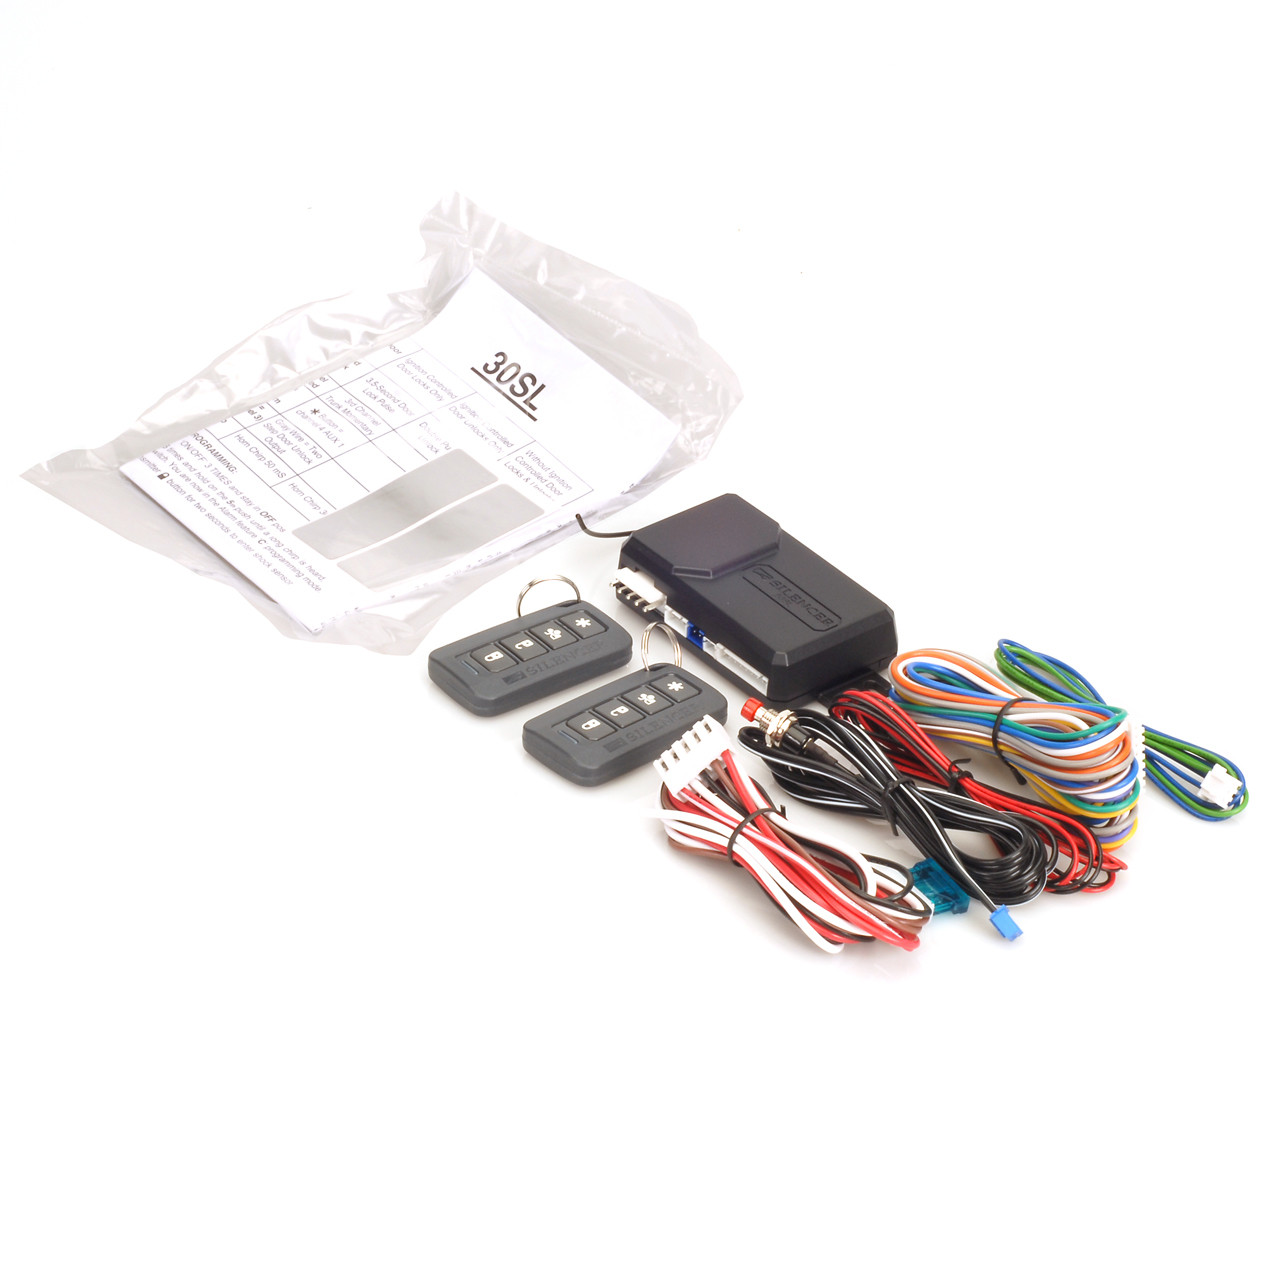 SILENCER 30SL ONE-WAY REMOTE CAR ALARM SECURITY AND KEYLESS ENTRY SYSTEM